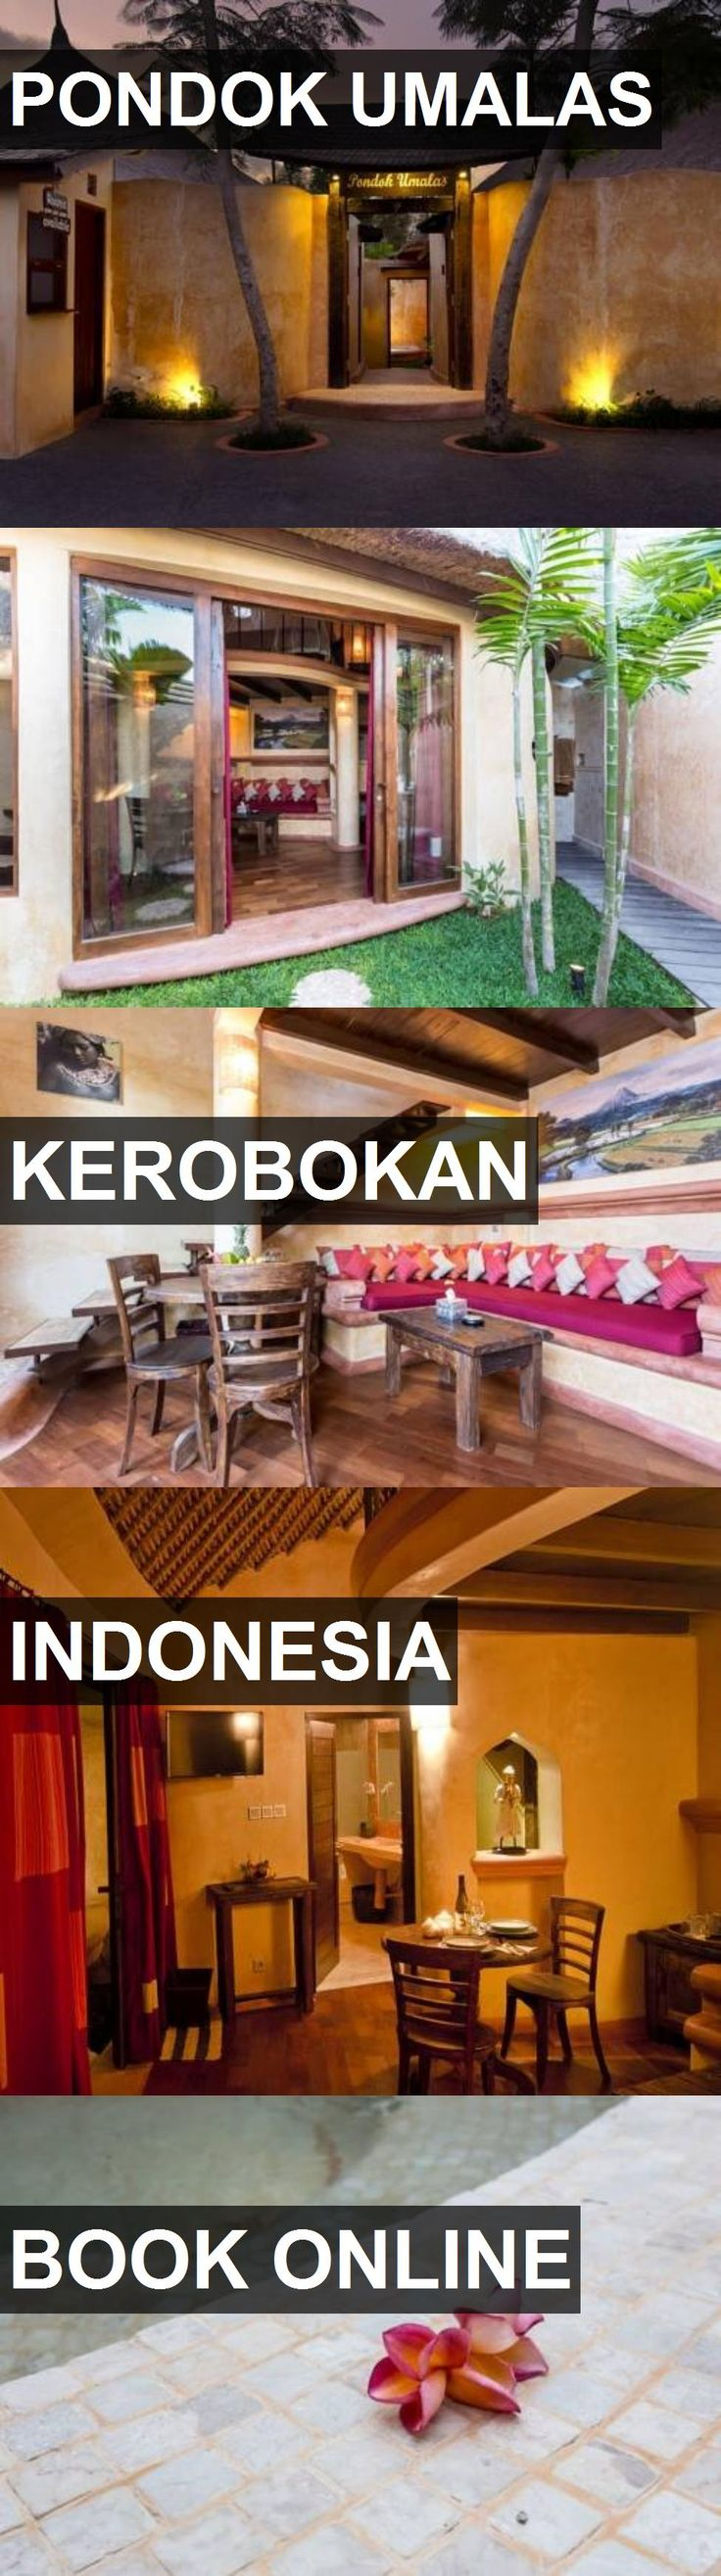 Hotel PONDOK UMALAS in Kerobokan, Indonesia. For more information, photos, reviews and best prices please follow the link. #Indonesia #Kerobokan #travel #vacation #hotel